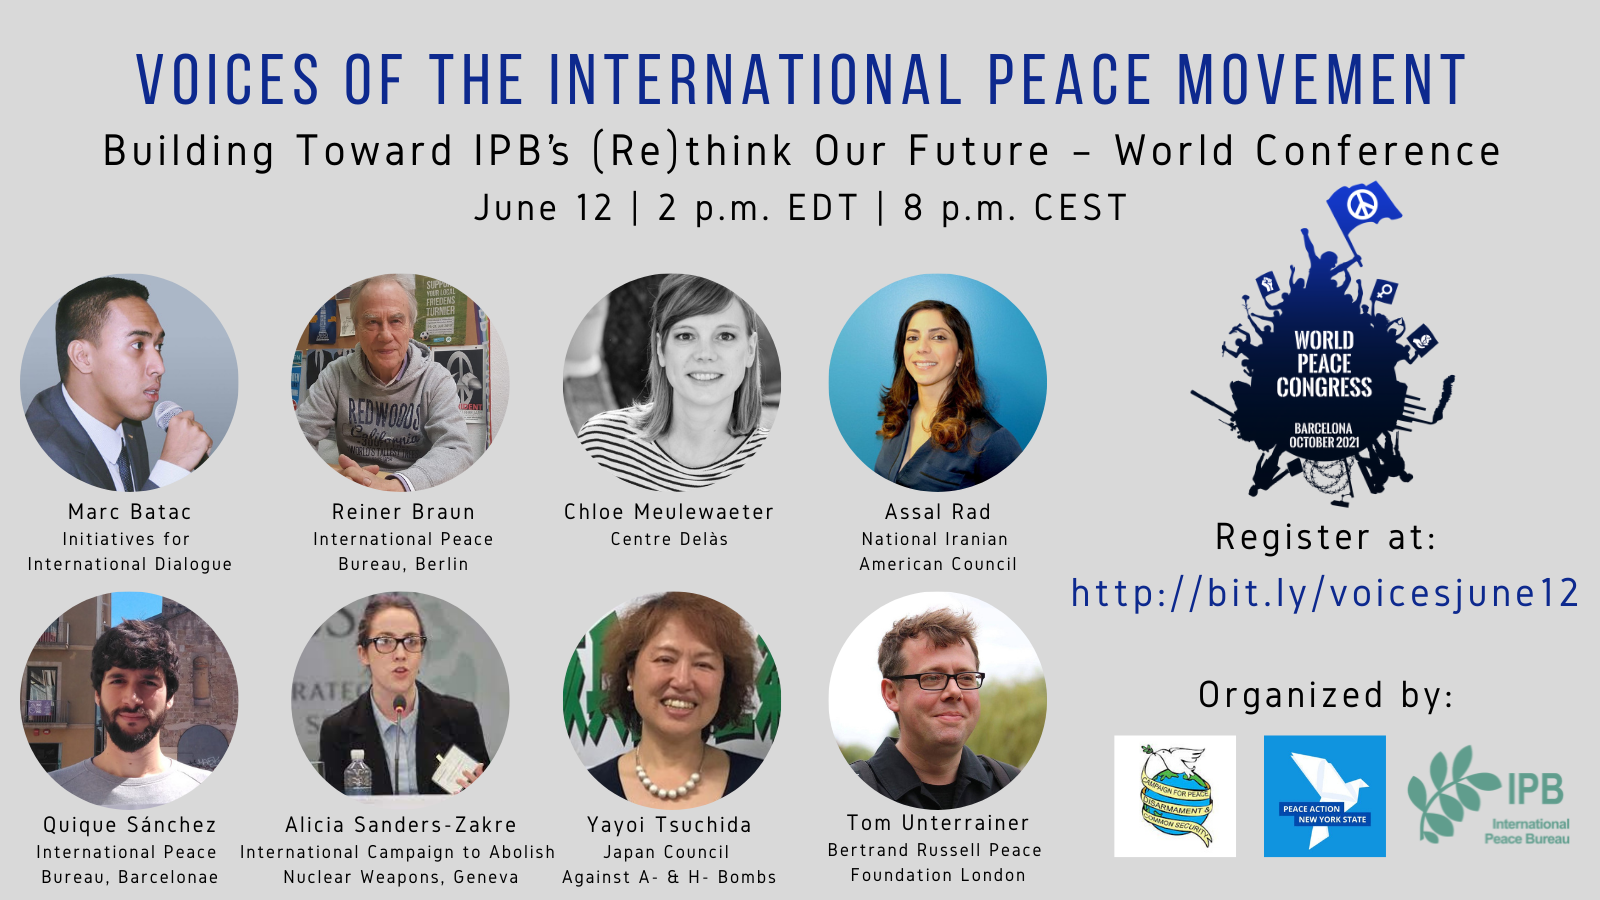 PREPARATORY CONFERENCE: Voices of the International Peace Movement